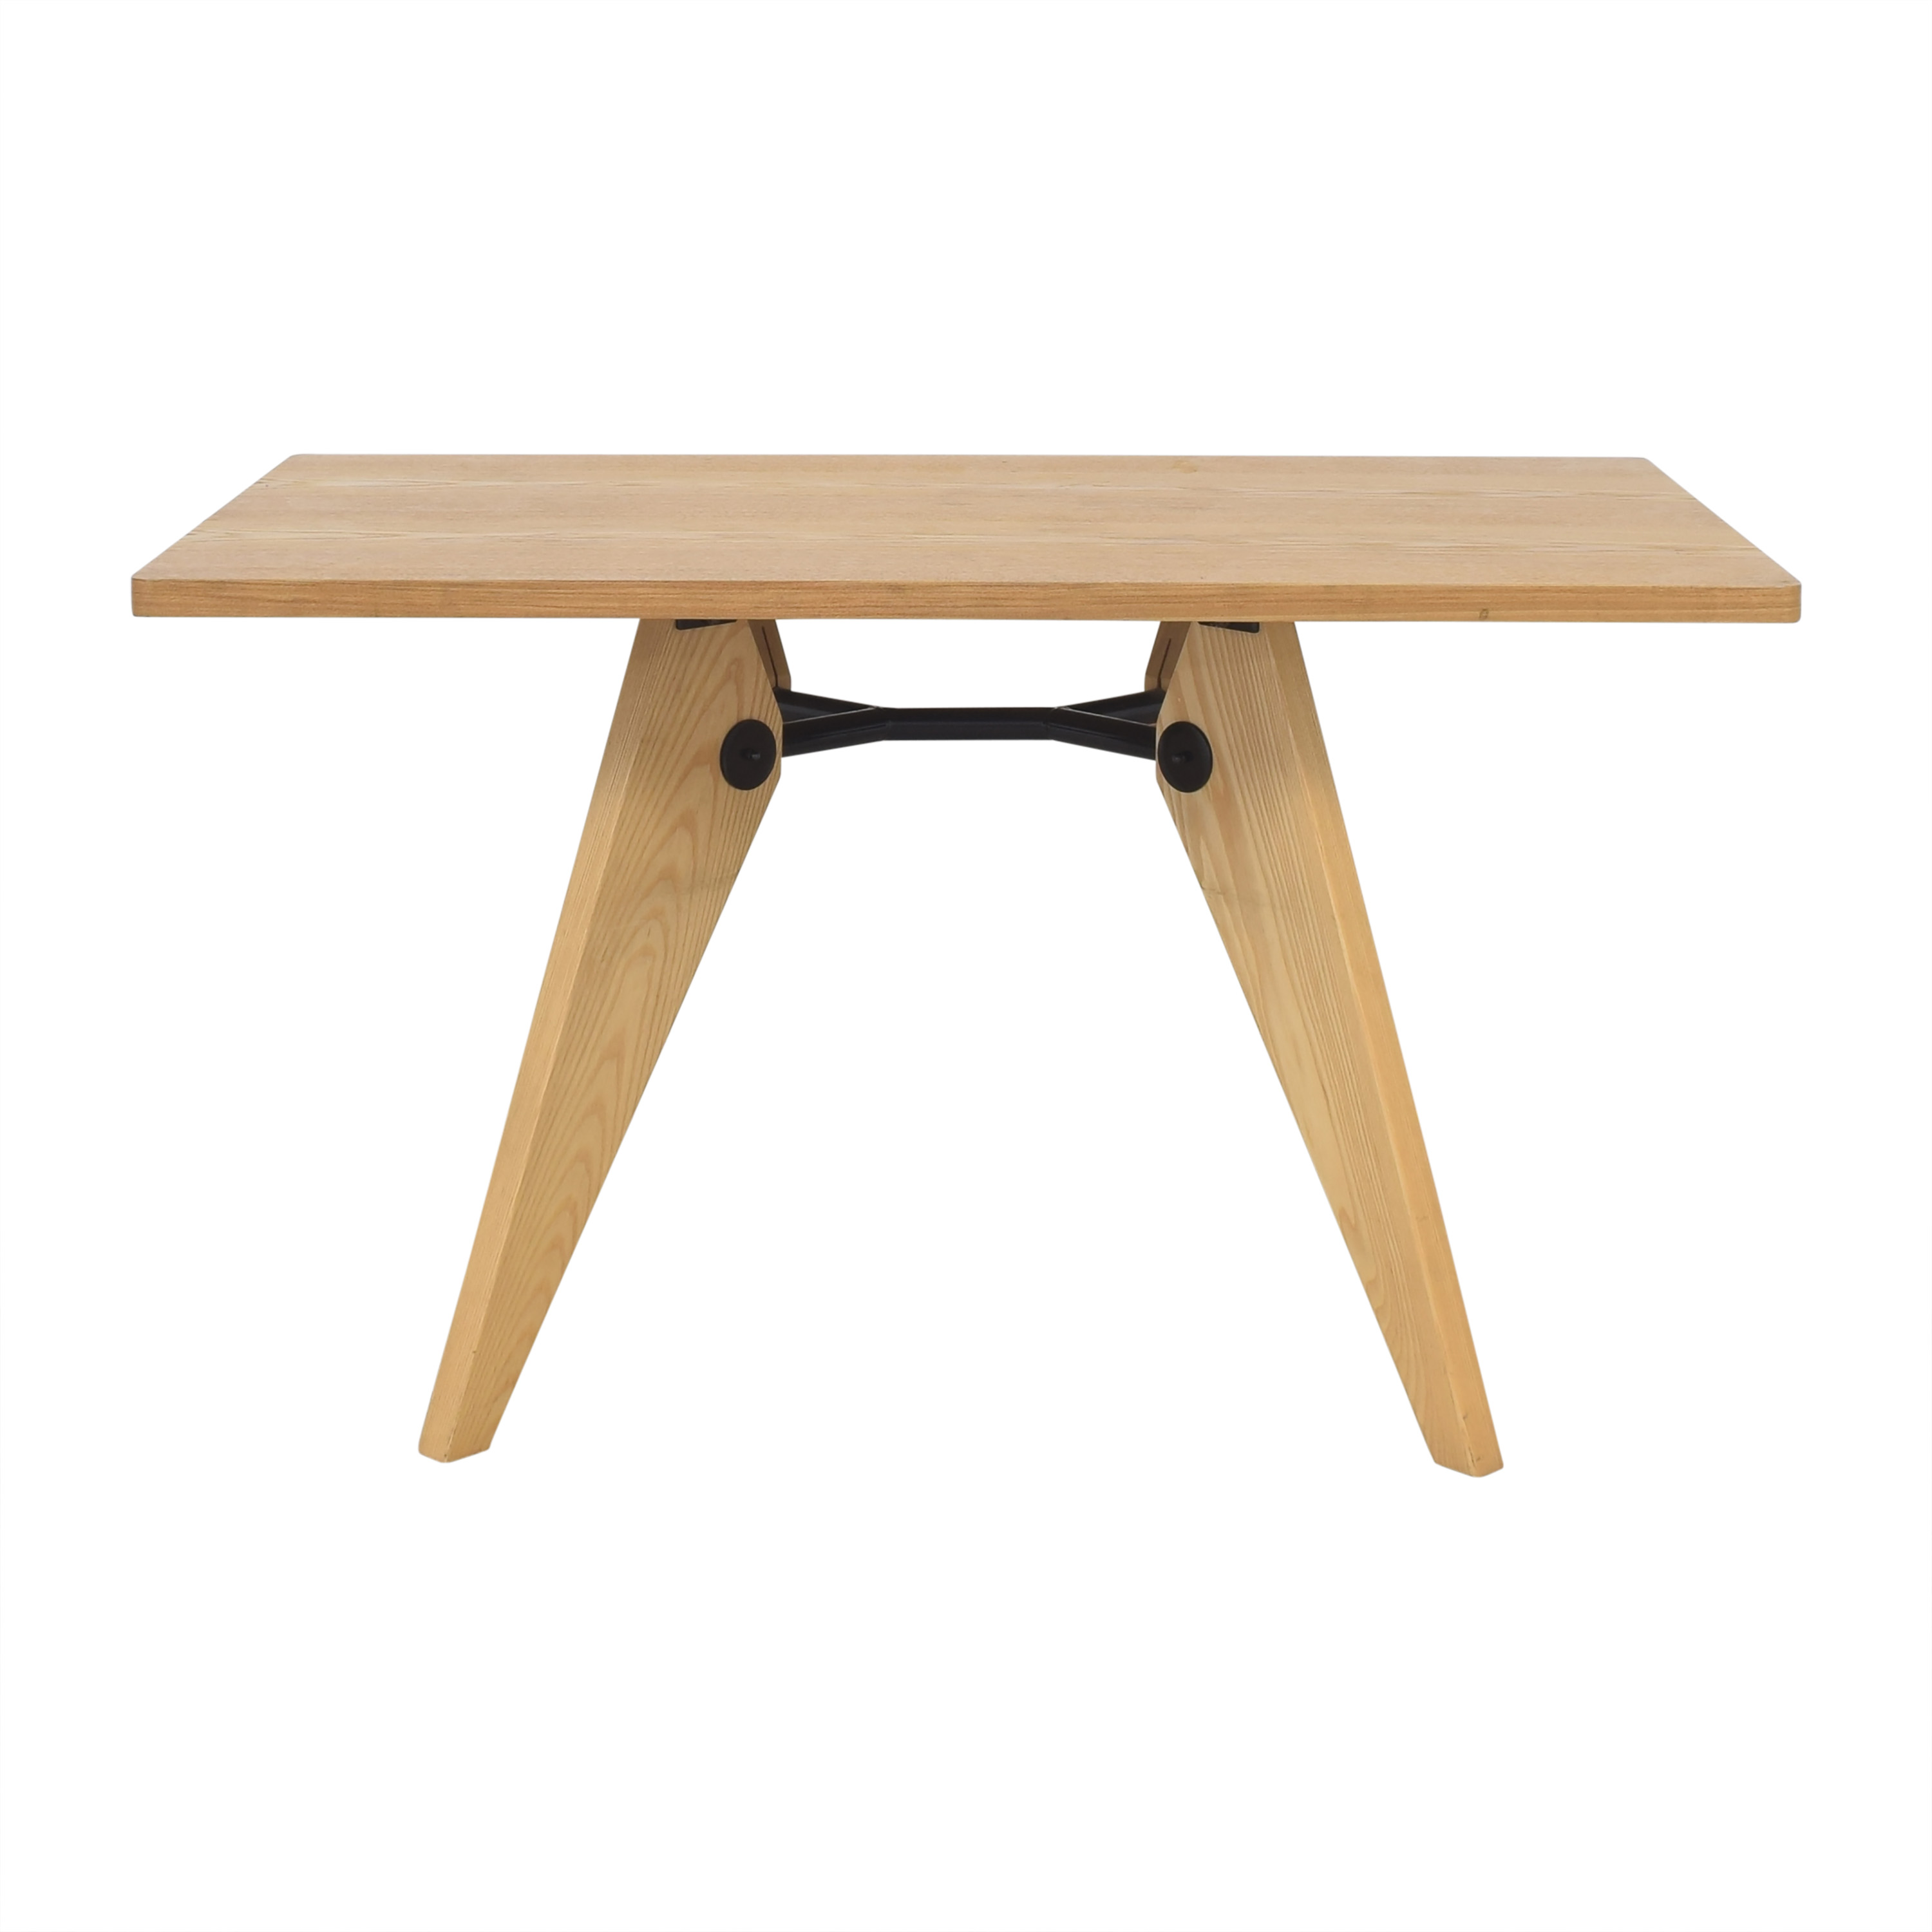 Mid-Century Style Dining Table dimensions